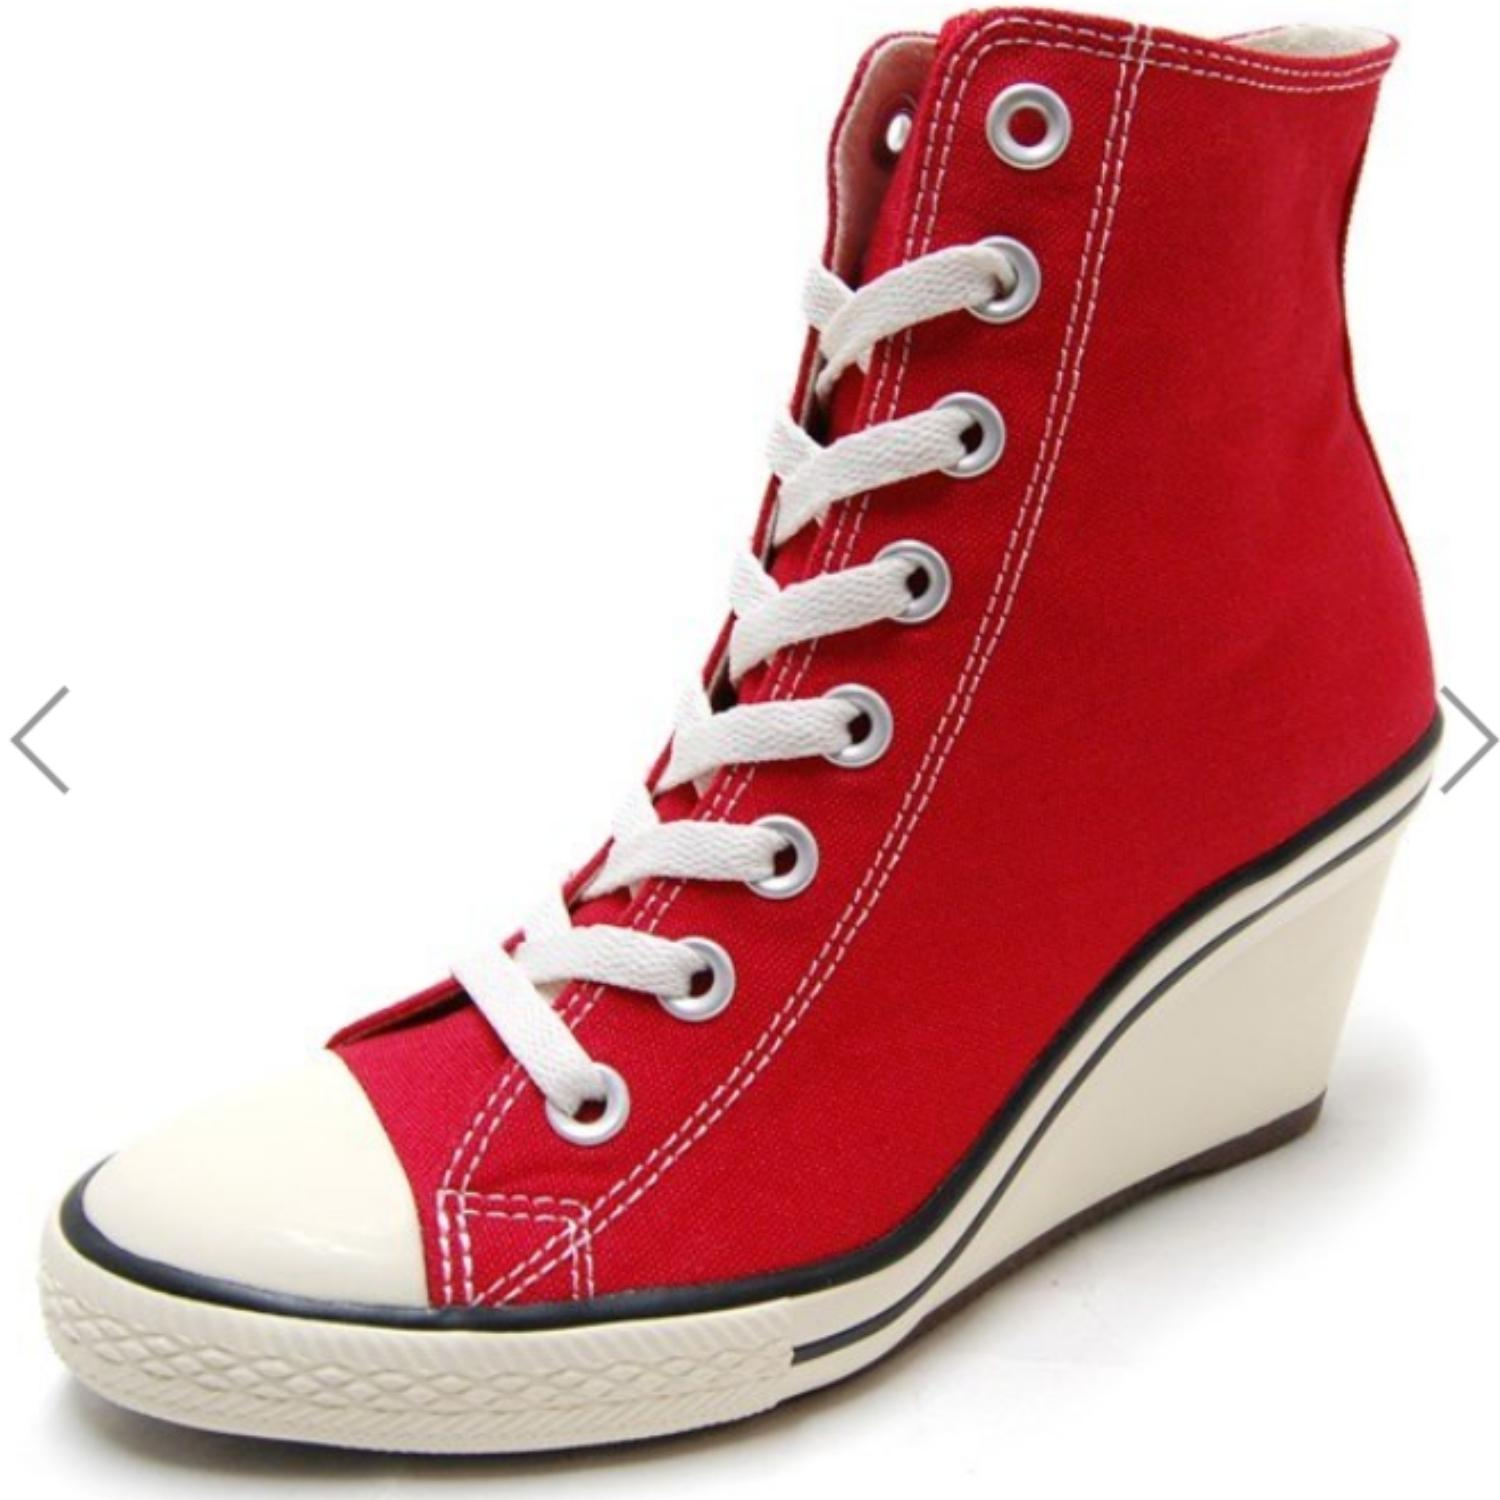 converse high heel shoes Sale,up to 51